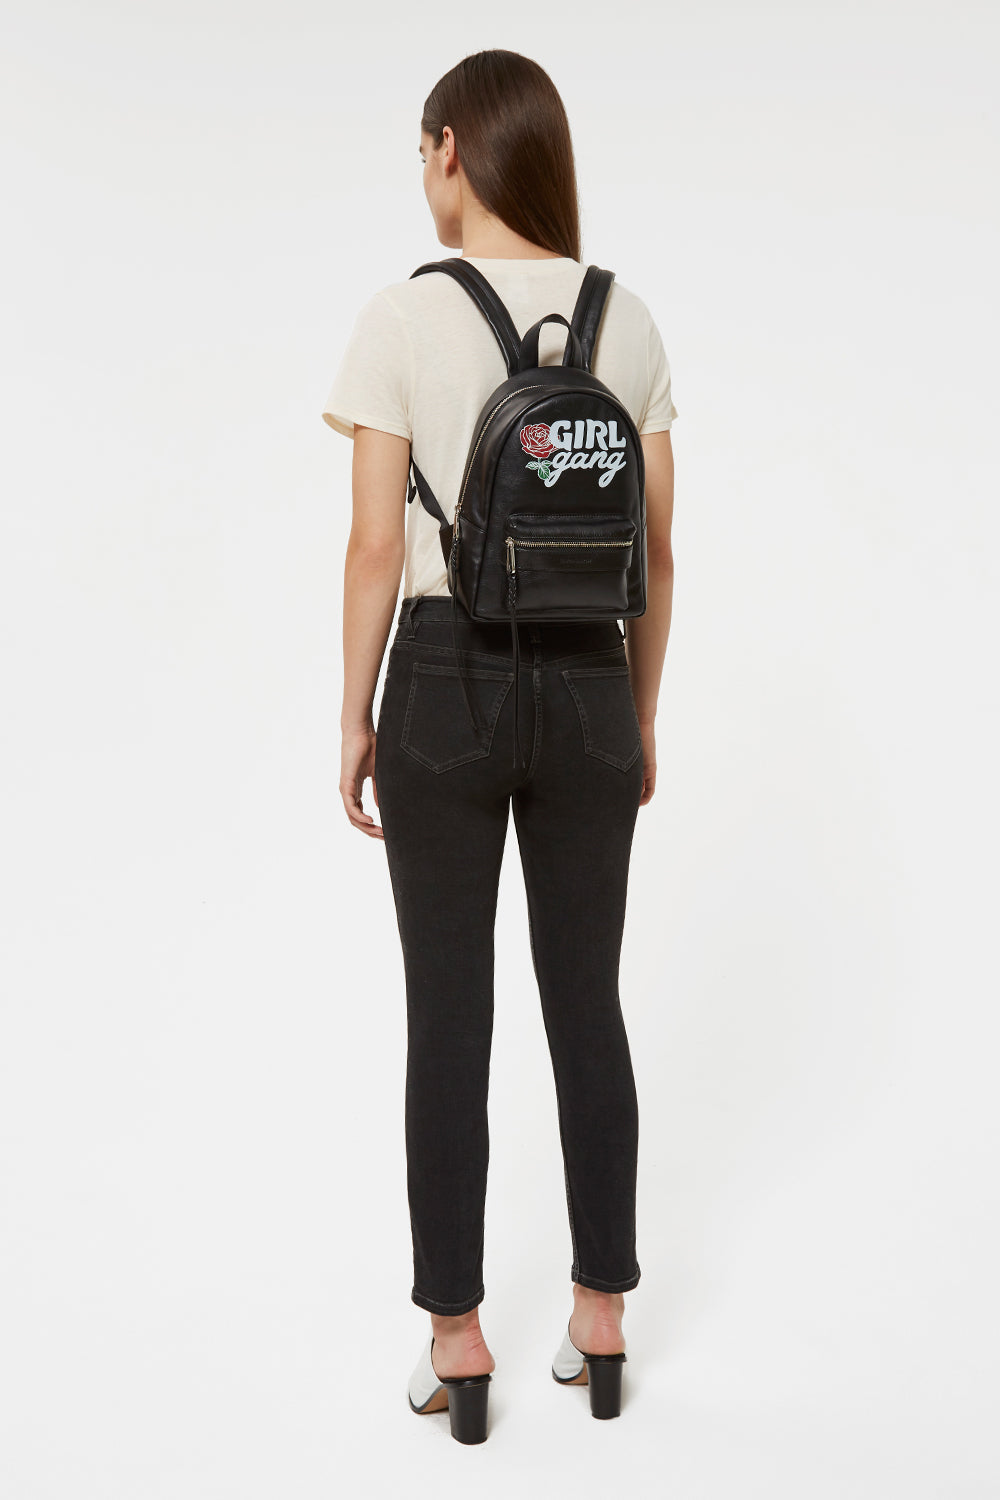 Small M.A.B. Backpack - Girl Gang